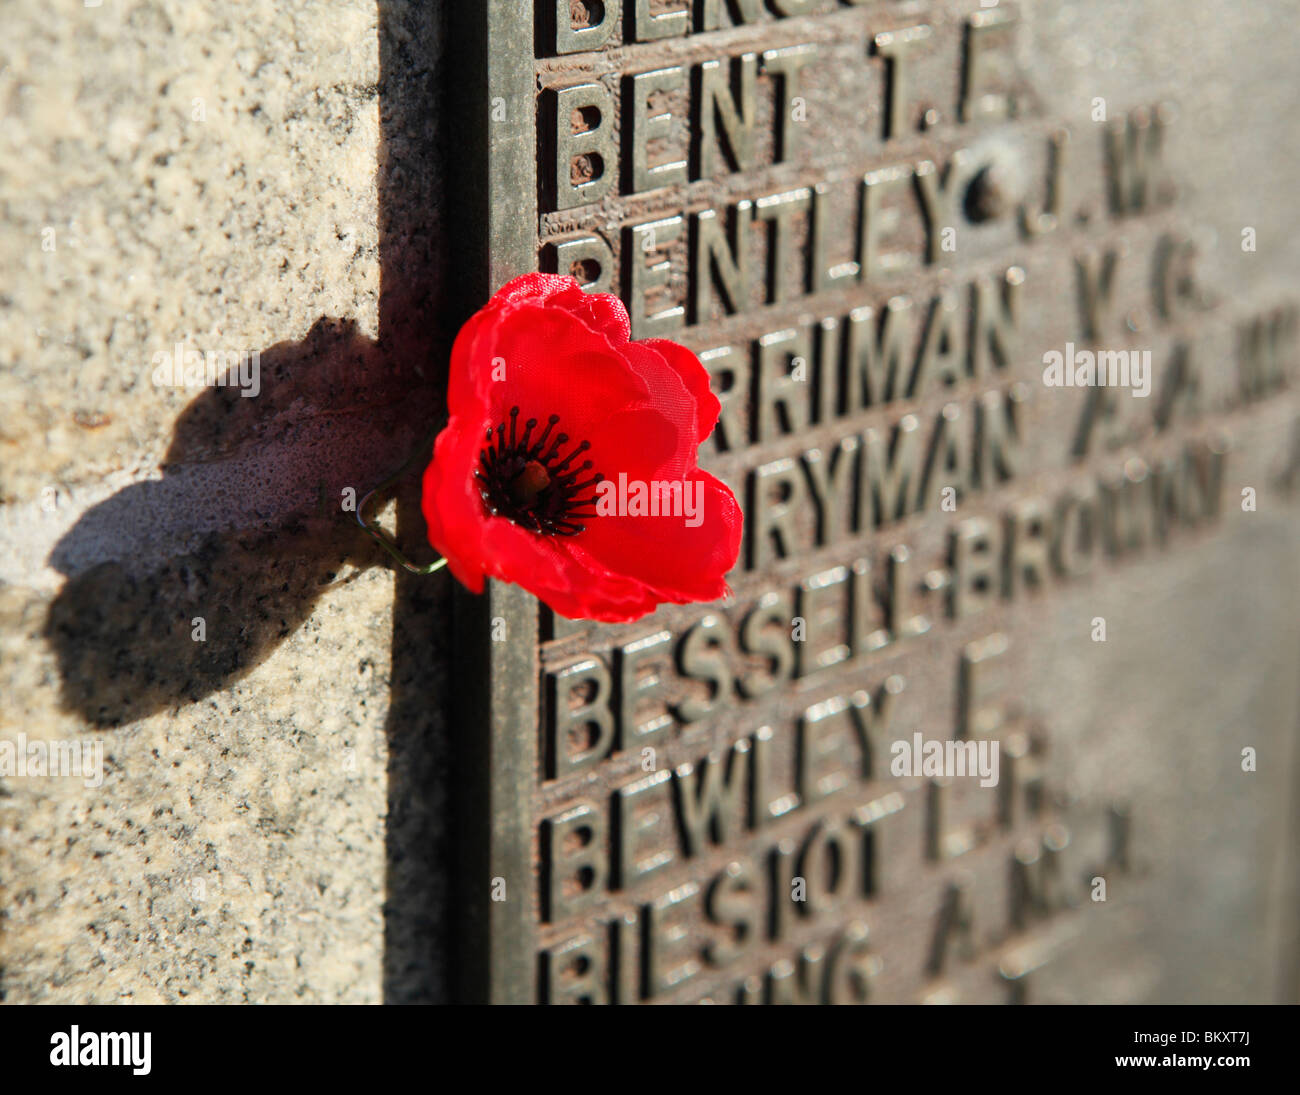 Plastic poppy stock photos plastic poppy stock images alamy poppy next to a plaque of remembrance on a war memorial stock image mightylinksfo